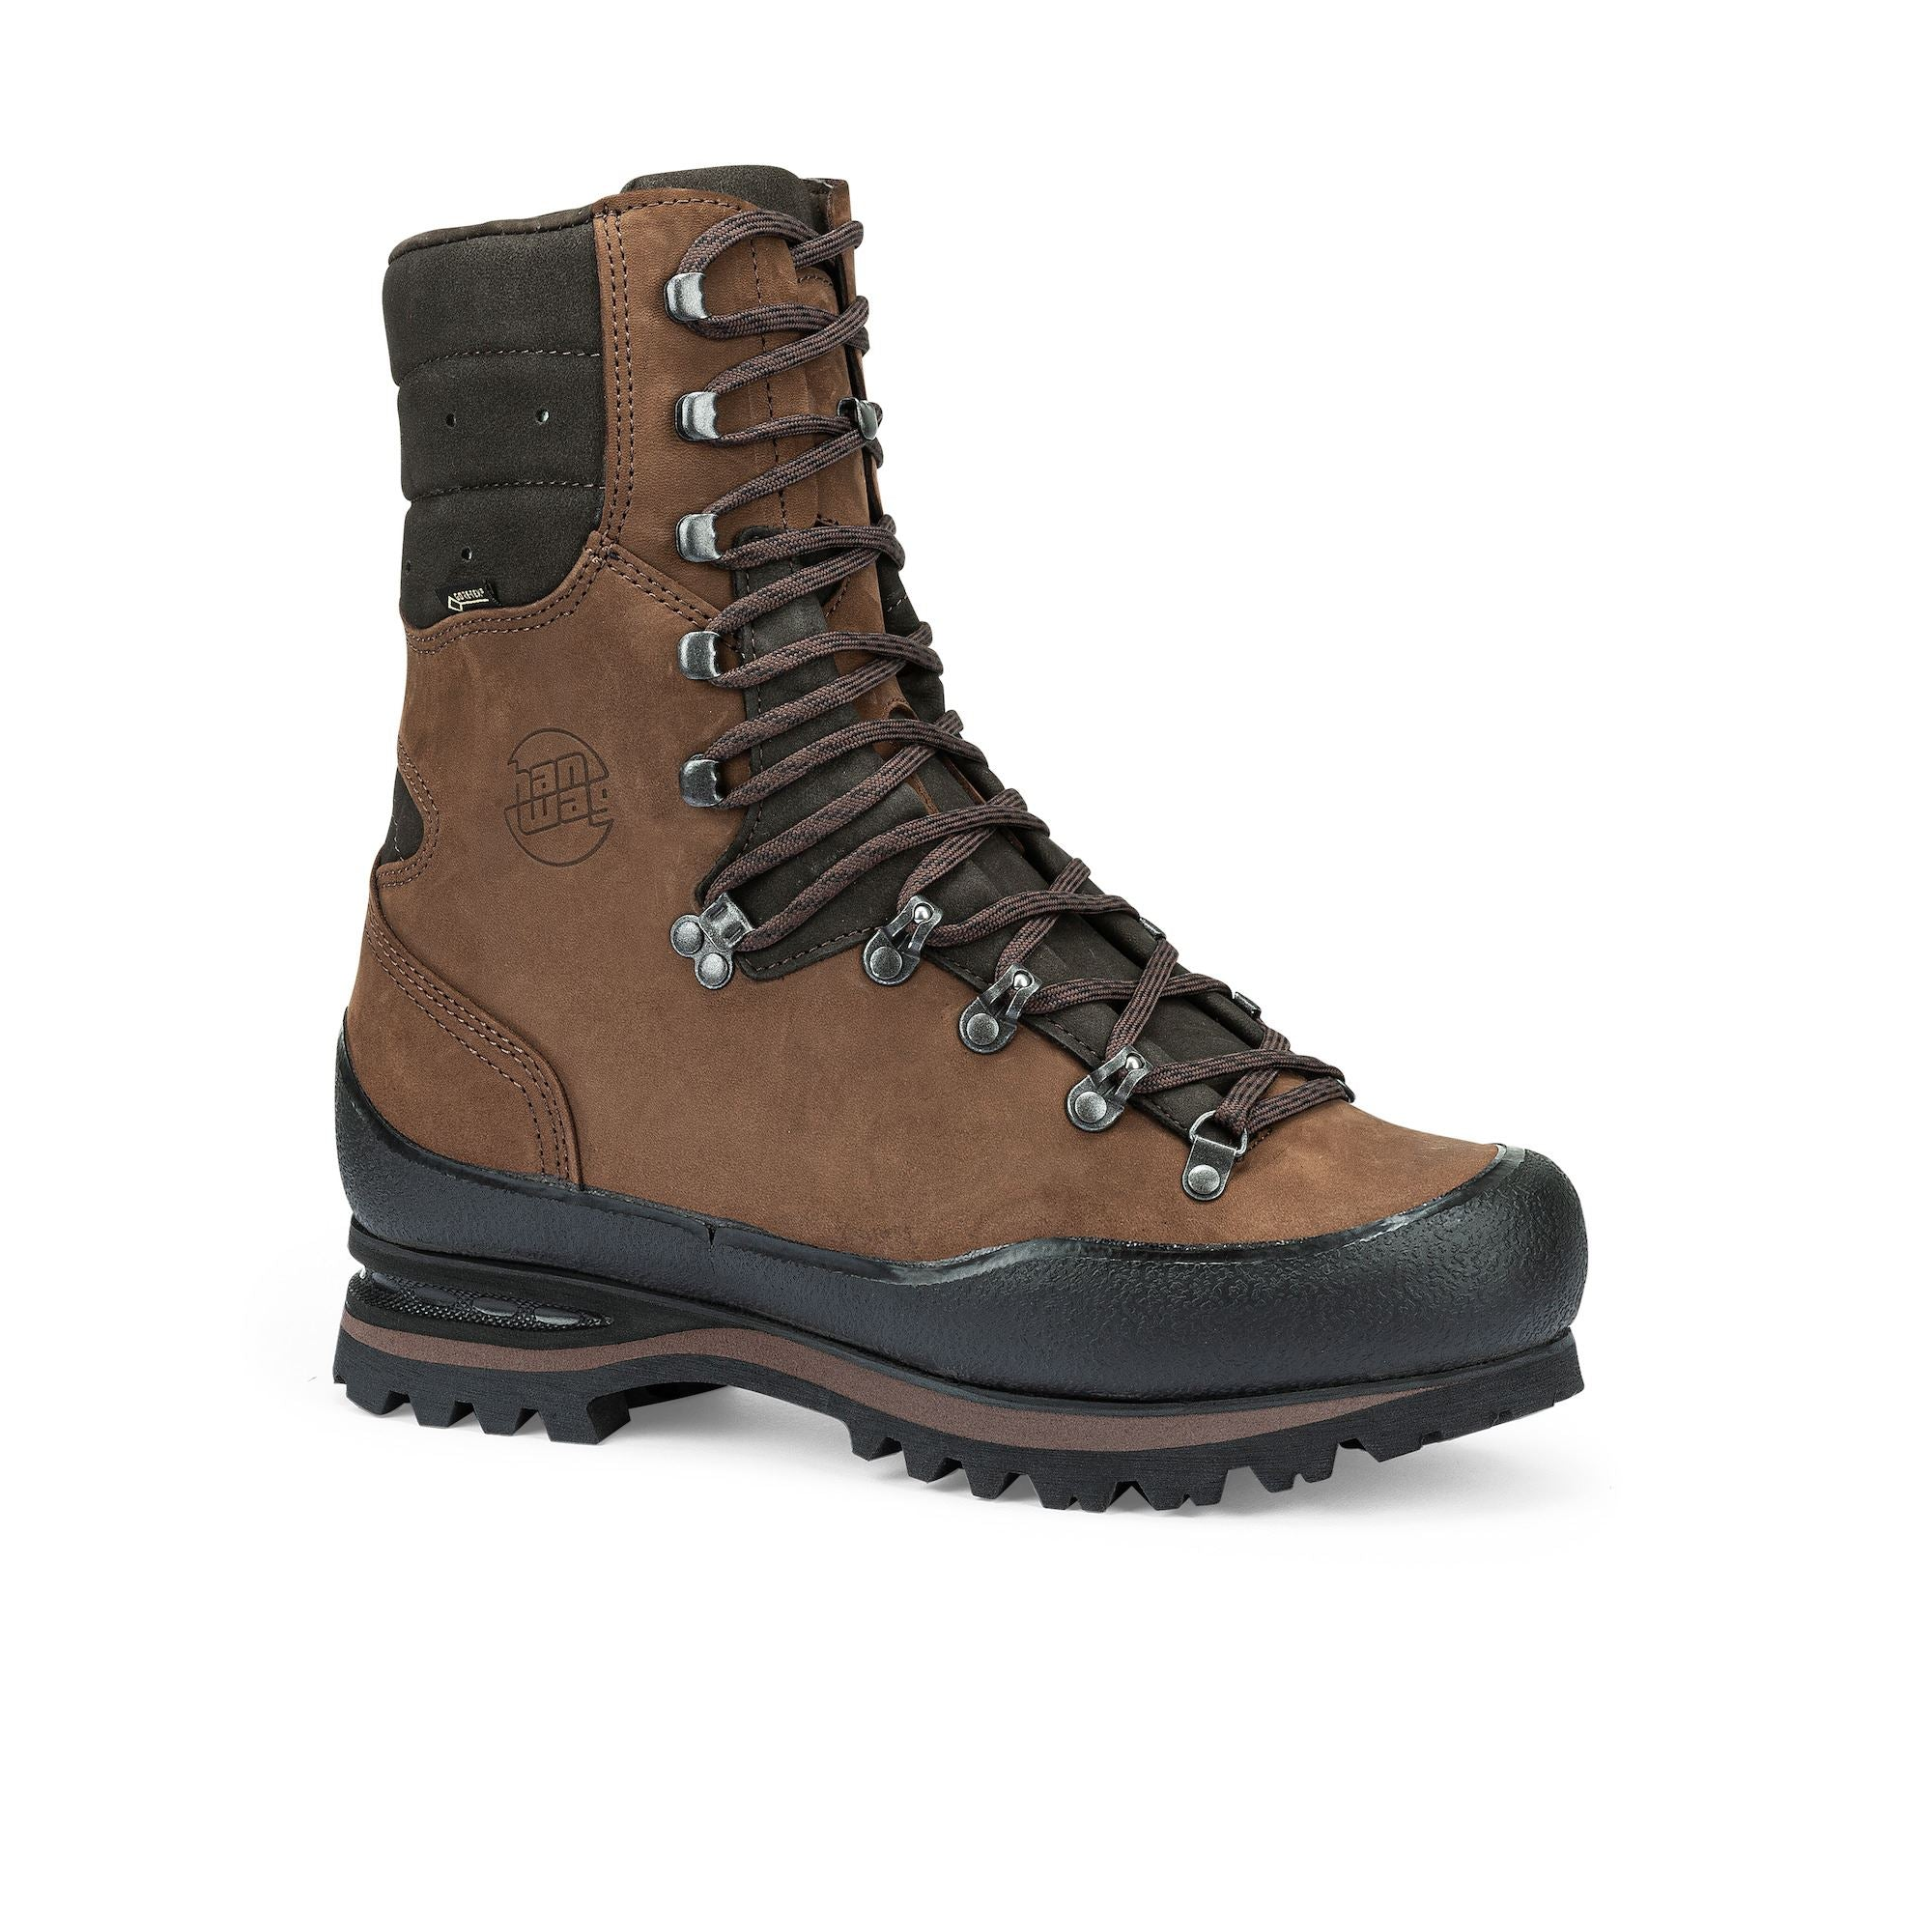 Hanwag Trapper Top GTX Hunting Boots